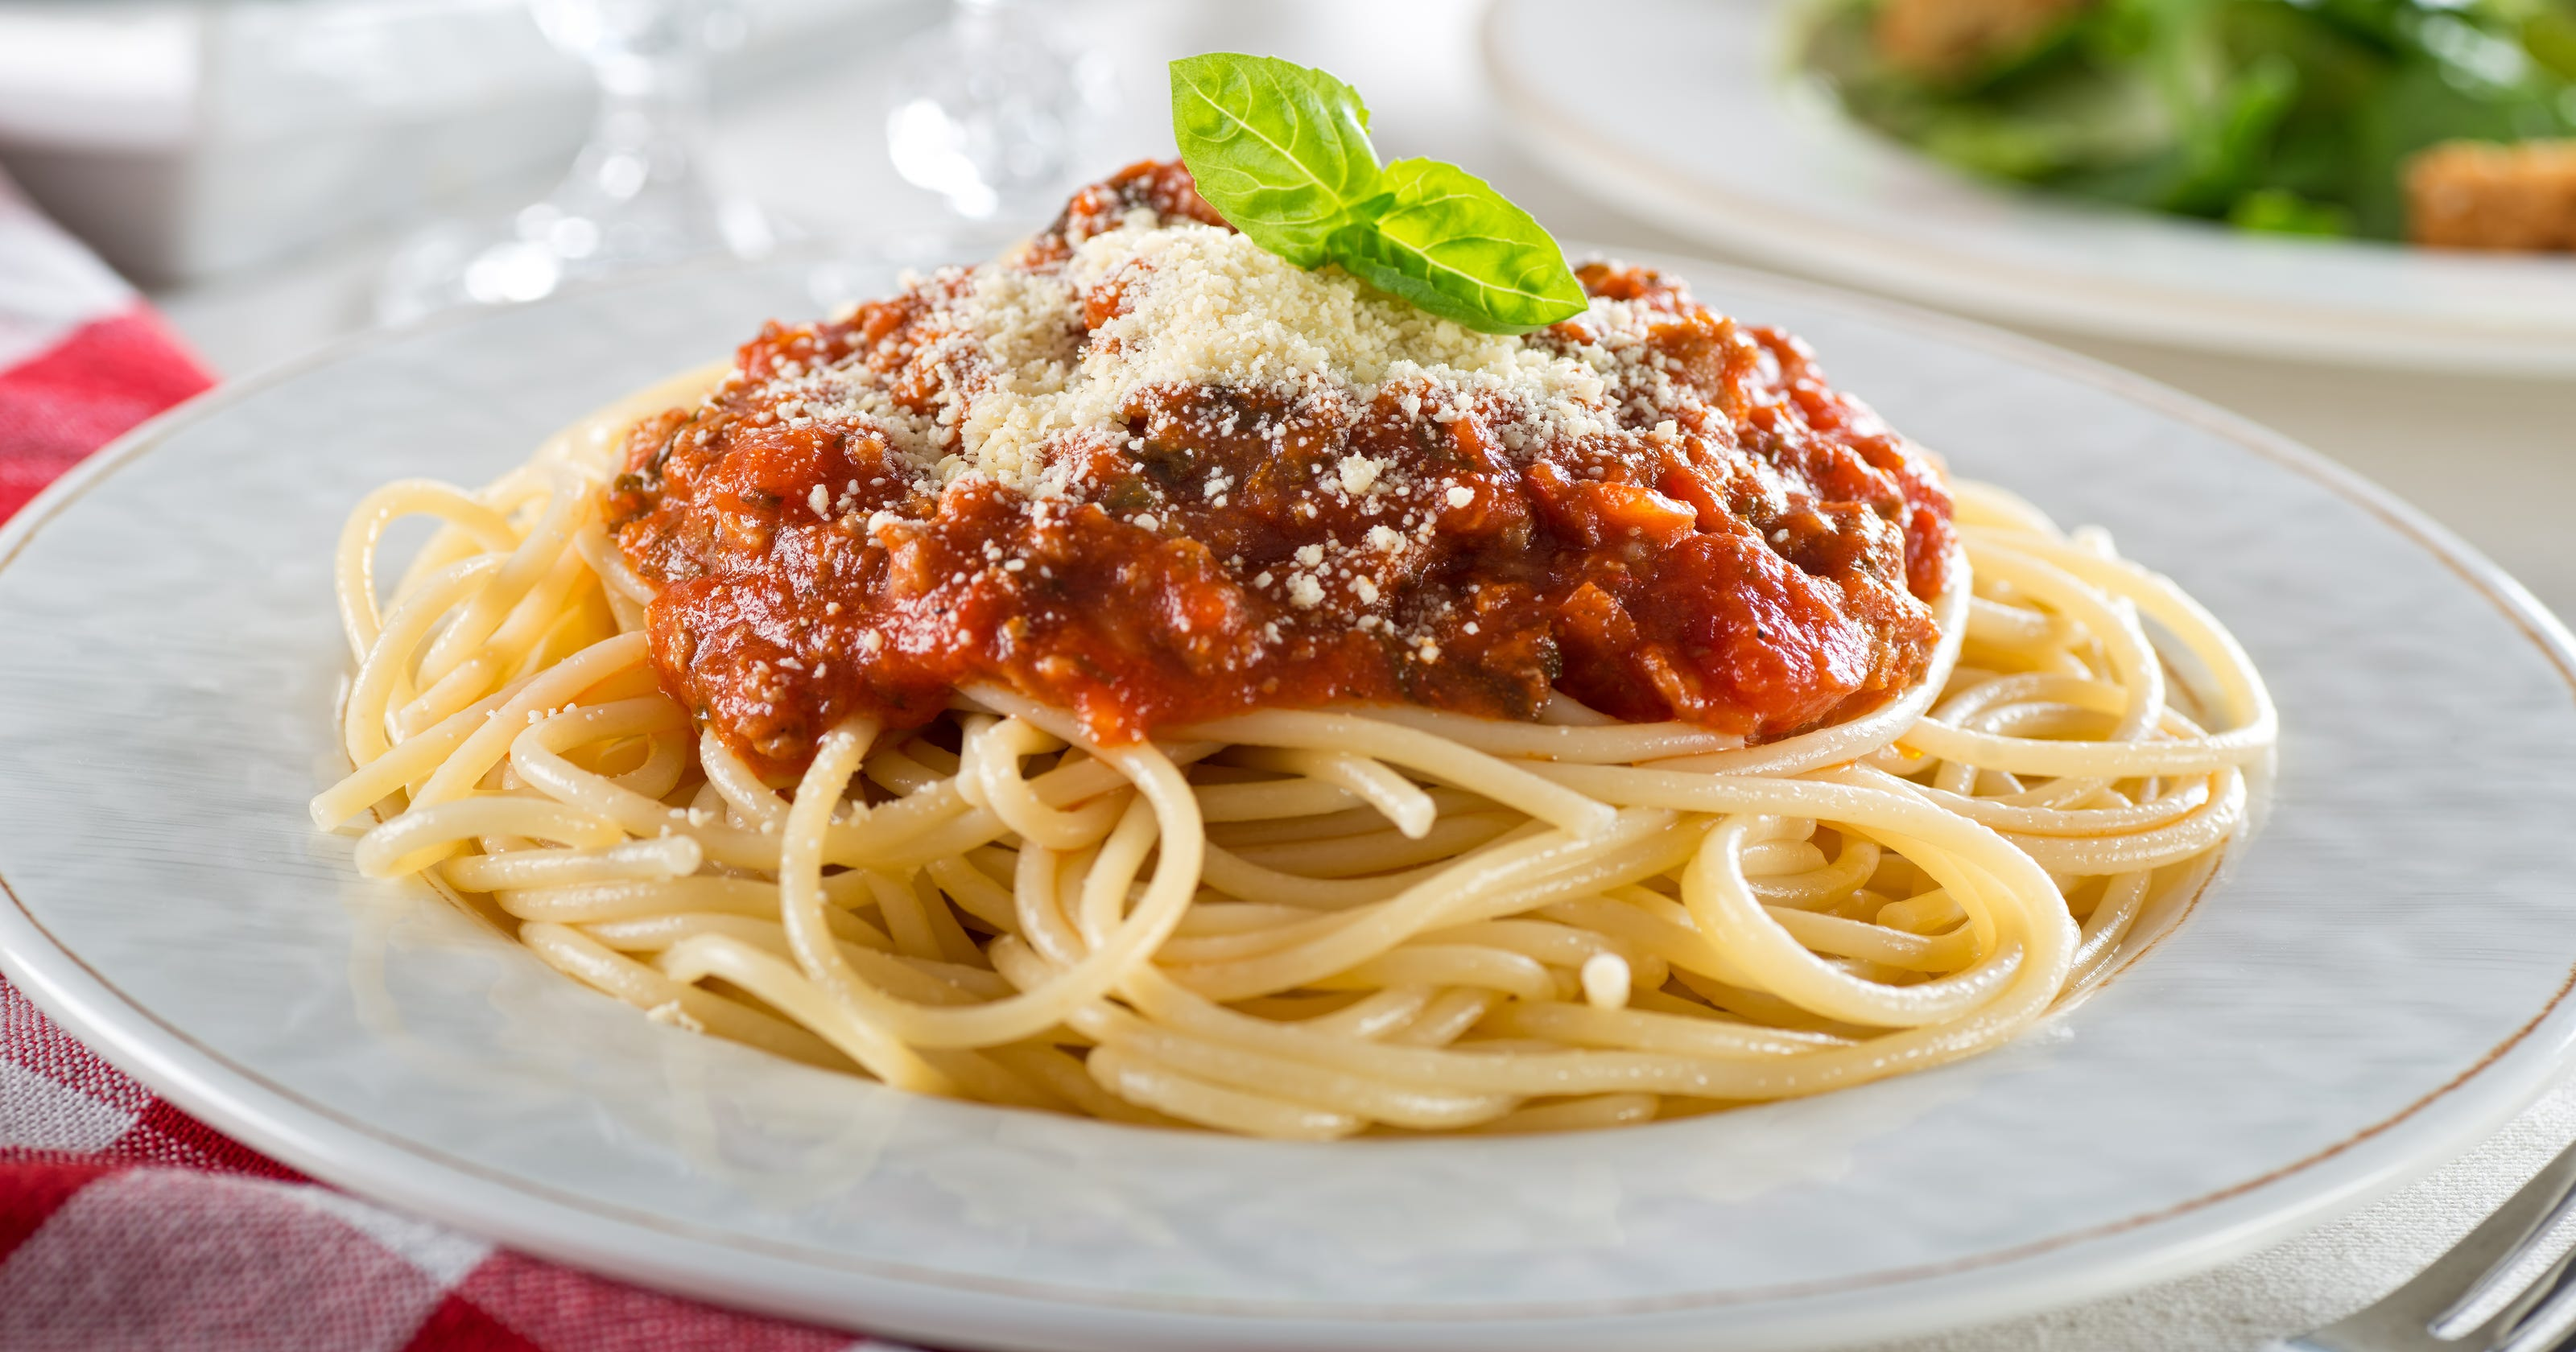 National spaghetti day 2019 where to get deals and freebies friday and beyond for Olive garden national pasta day